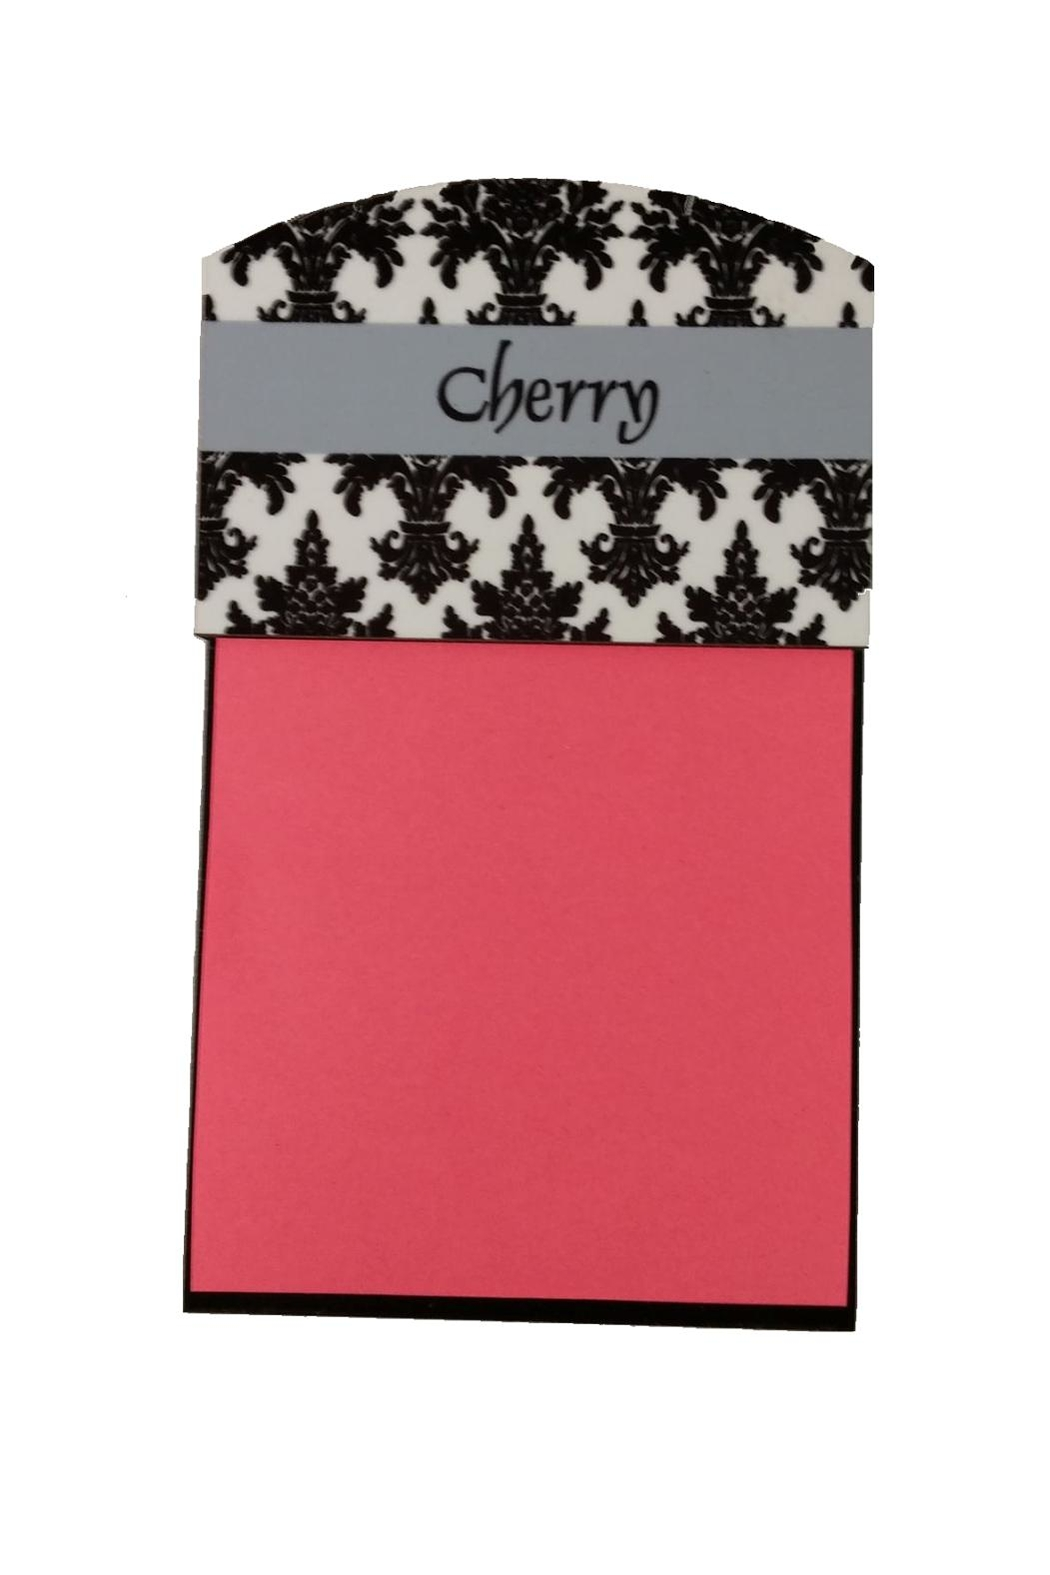 Cherry's Delight Personalized Post It Holder - Main Image